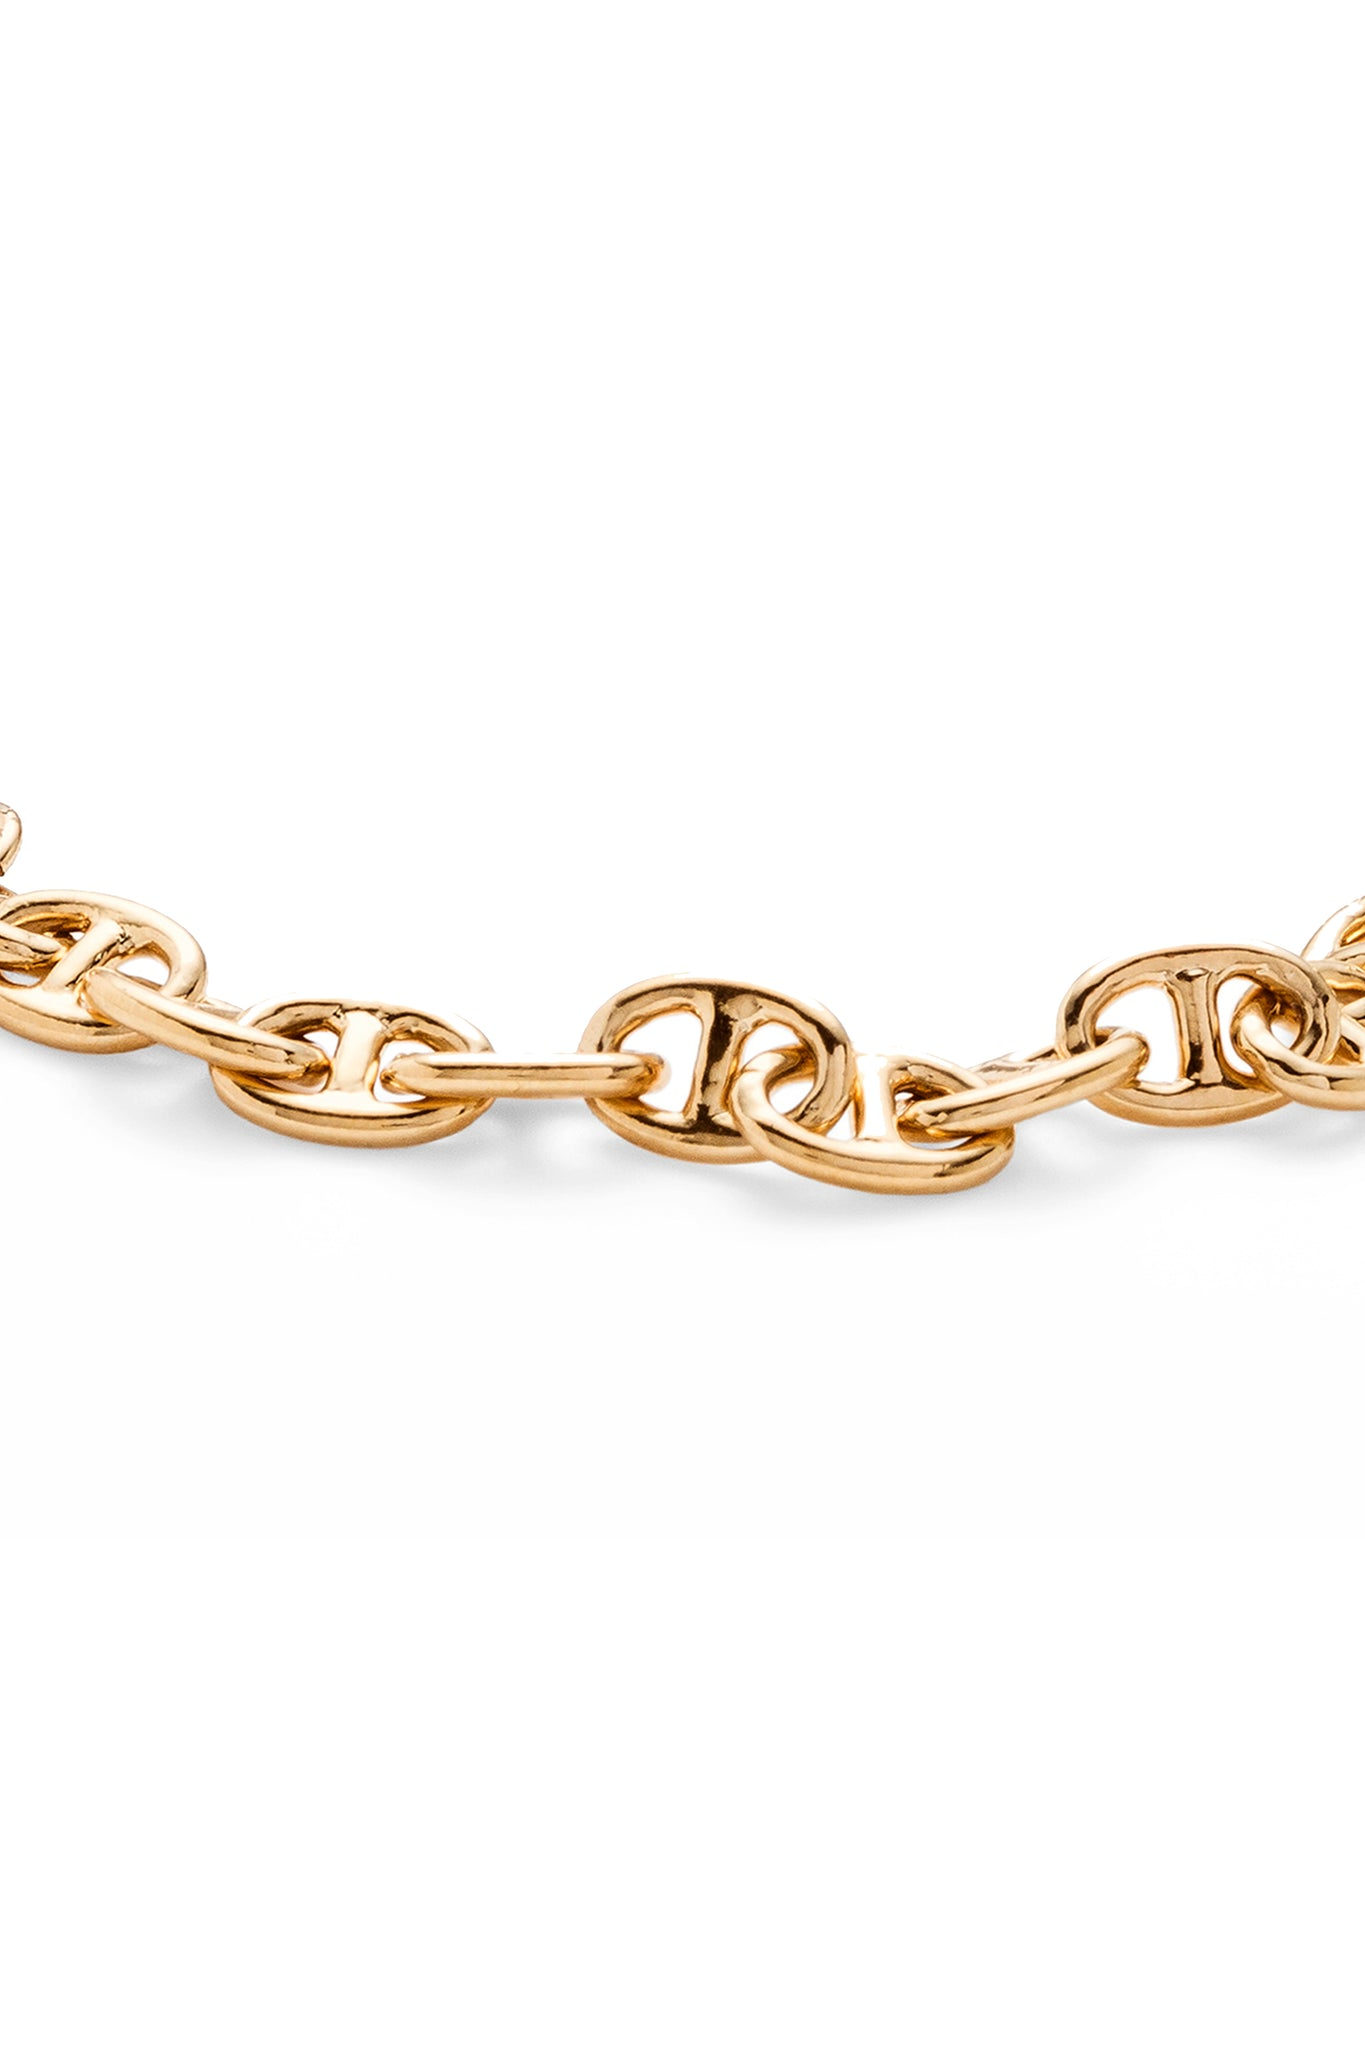 Mariner's Link Necklace